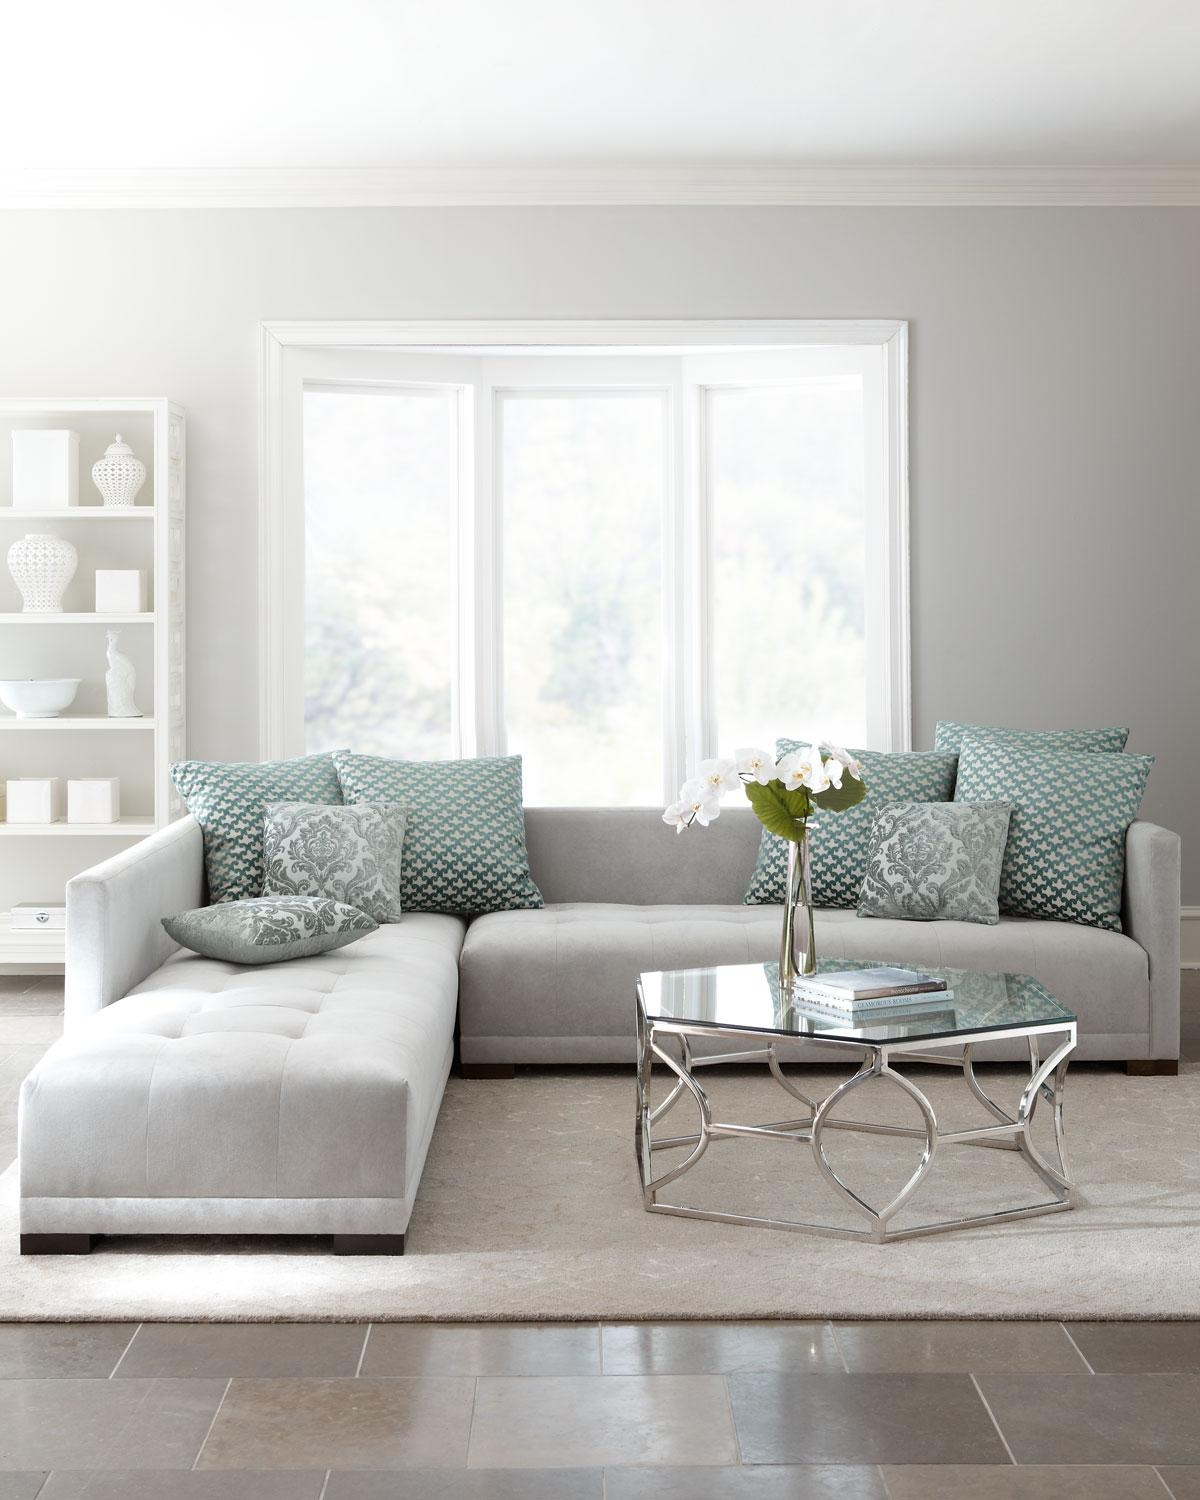 Sofa: Small Leather Sectional | West Elm Sectional | Tufted In West Elm Sectional Sofa (Image 17 of 20)